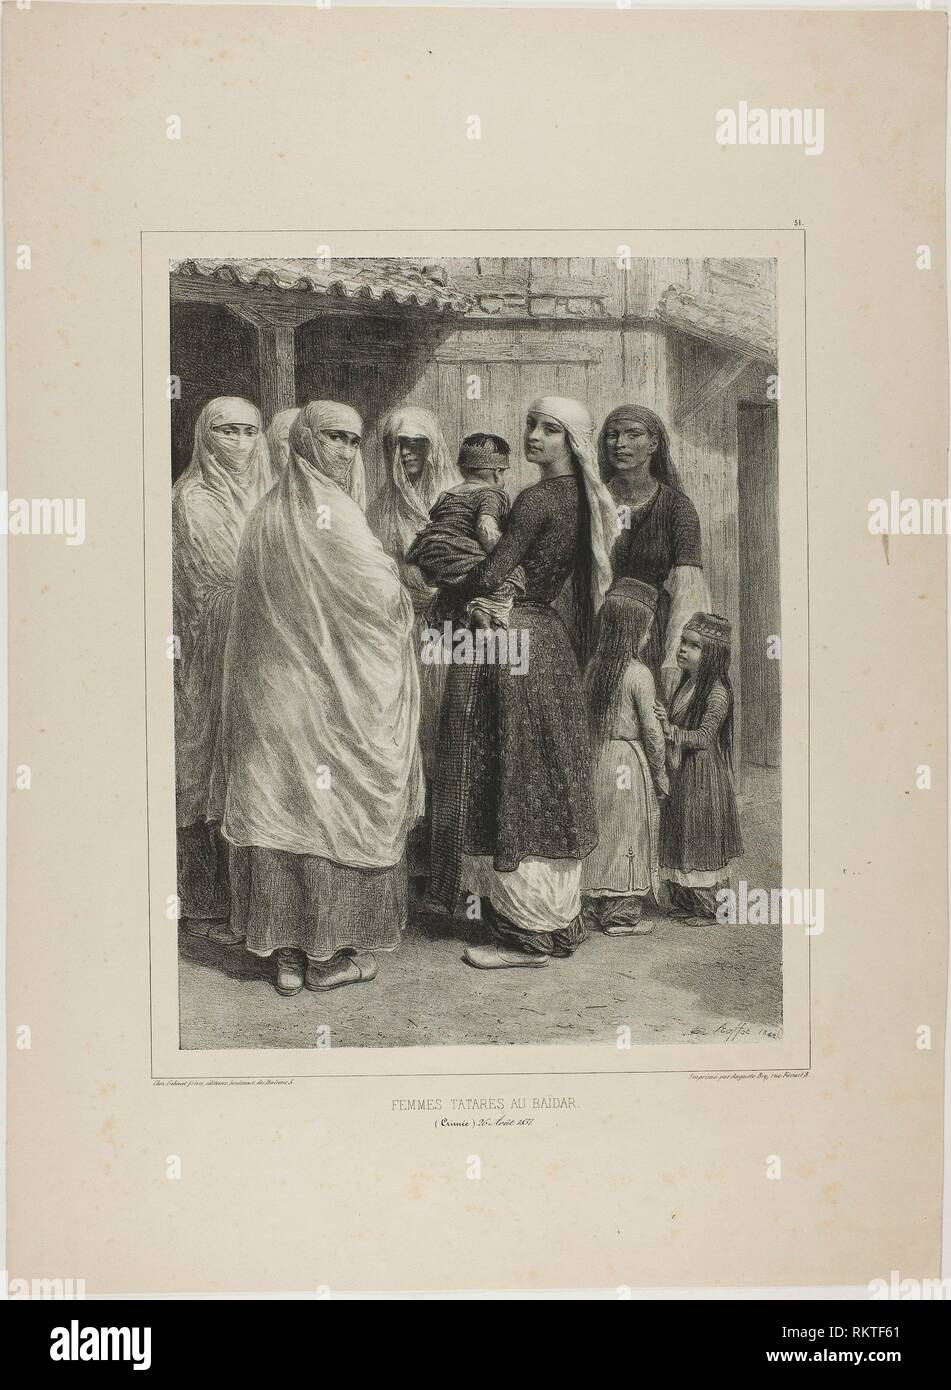 Tartar Women at the Baïdar, Crimea, August 26, 1837 - 1842 - Denis Auguste Marie Raffet (French, 1804-1860) printed by Auguste Bry (French, 19th - Stock Image